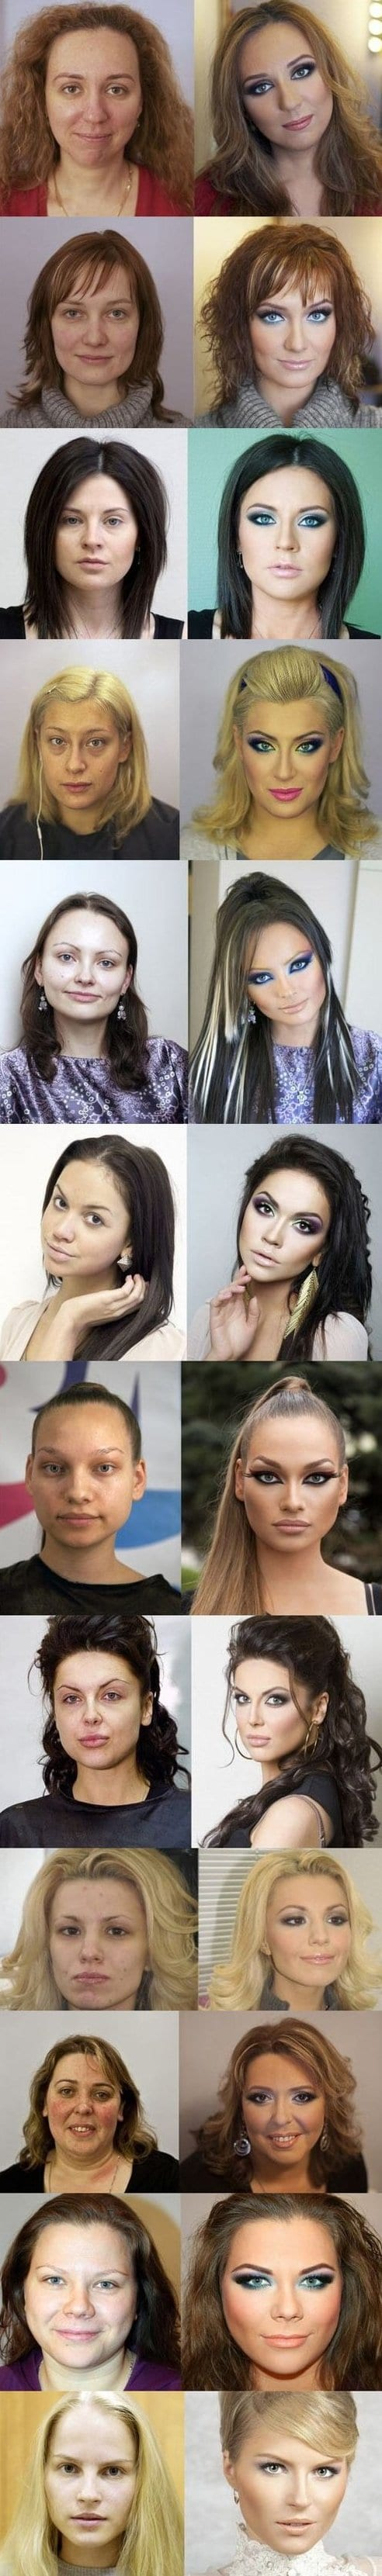 makeup-before-and-after